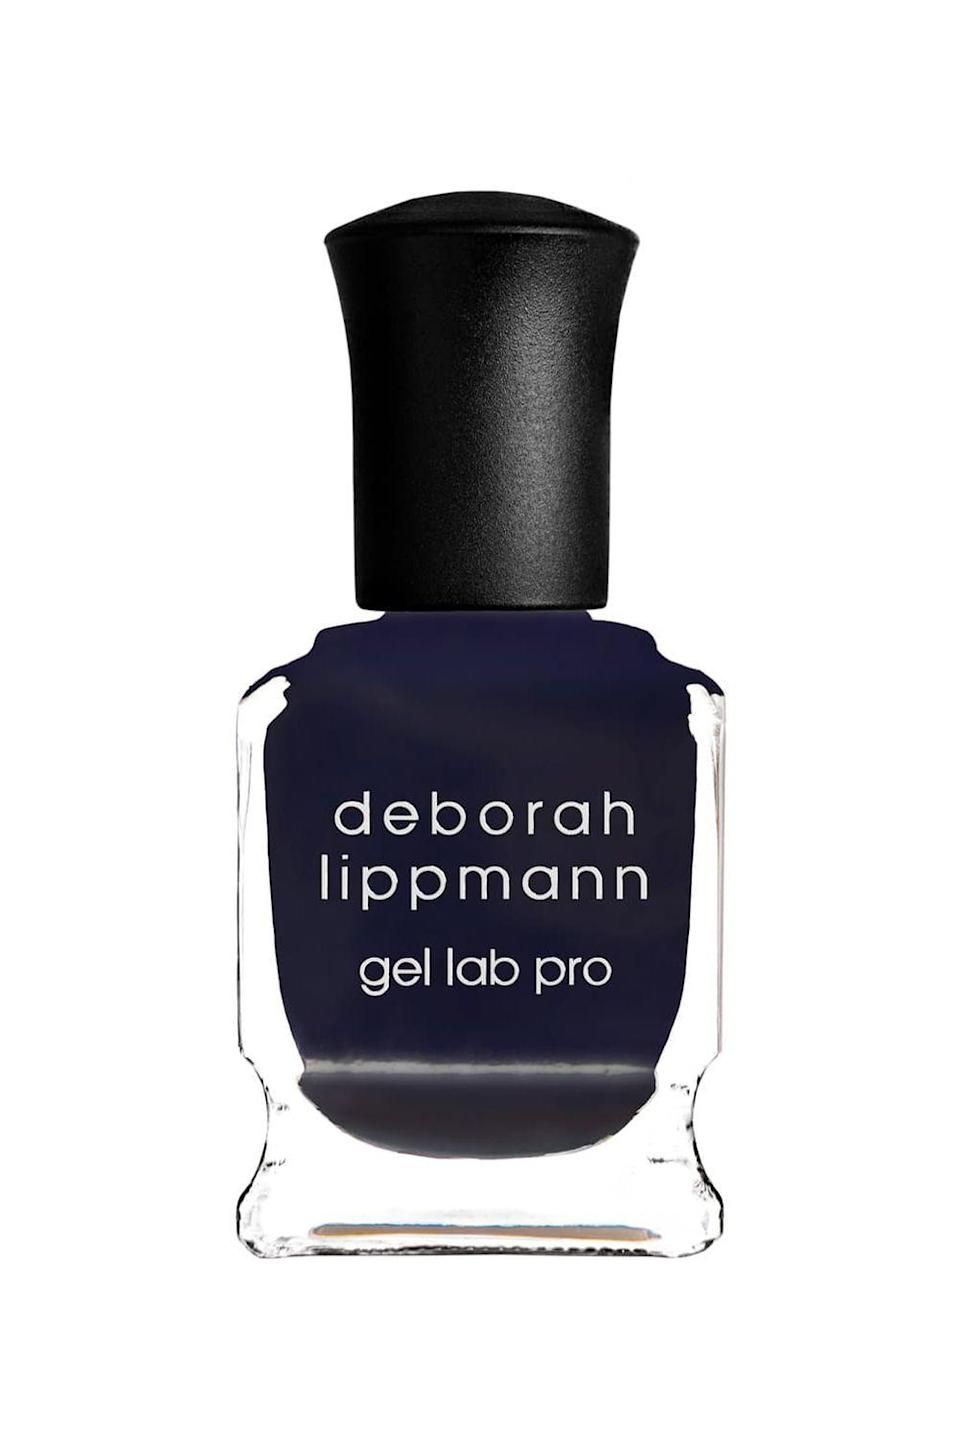 """<p><strong>Deborah Lippmann Gel Lab Pro Nail Color in Fight the Power</strong></p><p>nordstrom.com</p><p><strong>$15.00</strong></p><p><a href=""""https://go.redirectingat.com?id=74968X1596630&url=https%3A%2F%2Fwww.nordstrom.com%2Fs%2Fdeborah-lippmann-gel-lab-pro-nail-color%2F4267698&sref=https%3A%2F%2Fwww.marieclaire.com%2Fbeauty%2Fg3965%2Ffall-nail-colors%2F"""" rel=""""nofollow noopener"""" target=""""_blank"""" data-ylk=""""slk:SHOP IT"""" class=""""link rapid-noclick-resp"""">SHOP IT</a></p><p>Embrace the moodiness of the season with this midnight blue hue that'll last just as long as a gel manicure, without the damage. </p>"""